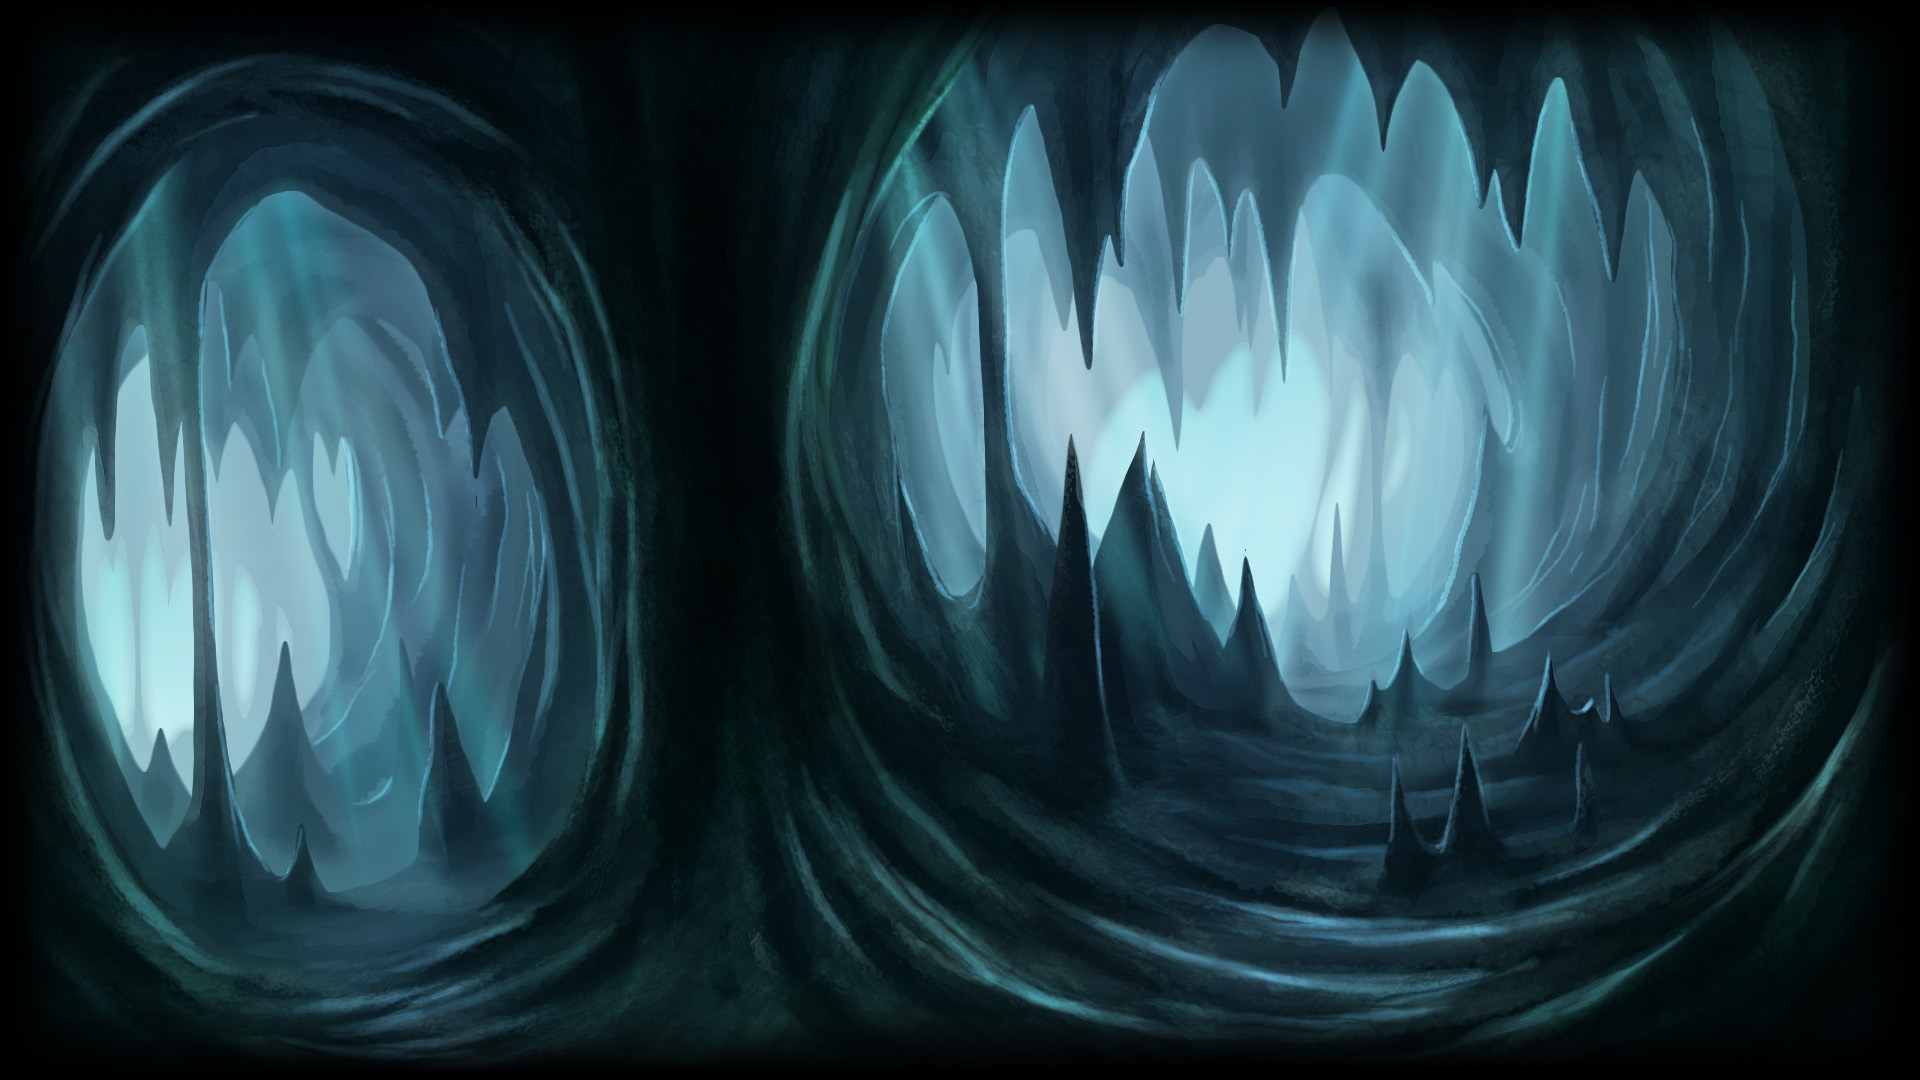 Drawn cavern 2d game background 2d Ref background background 2D